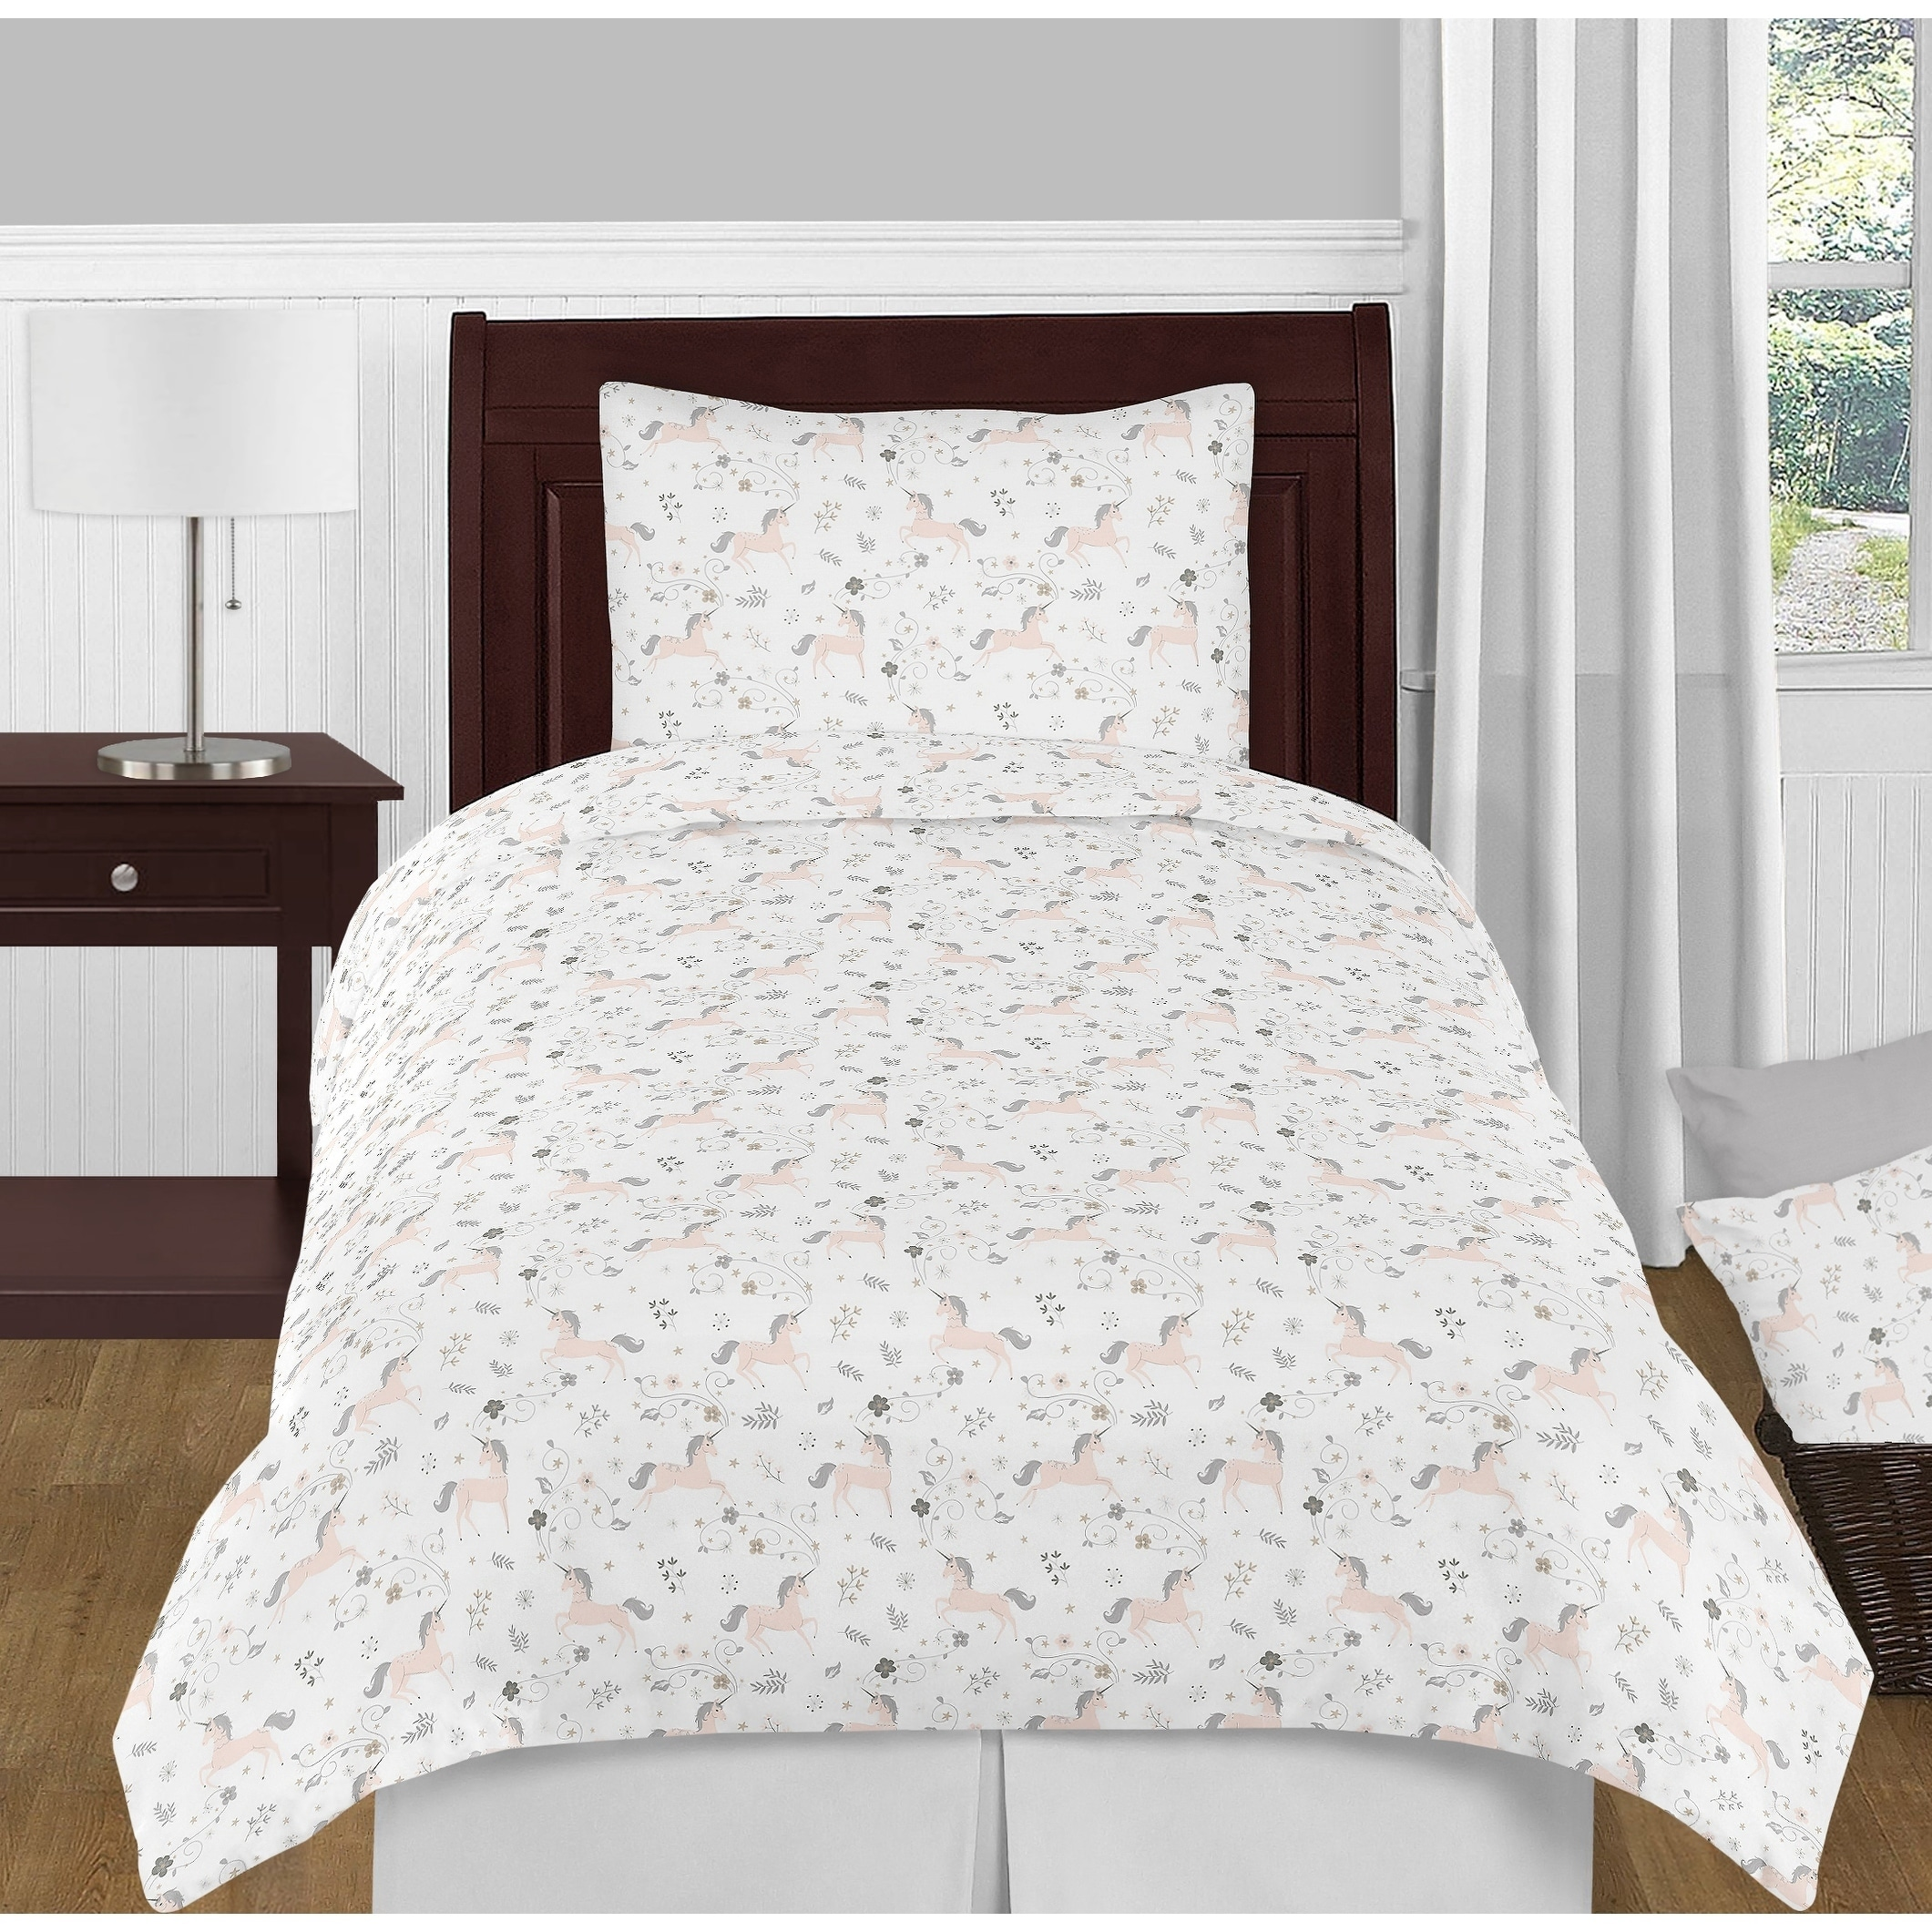 size beds bedspreads mainstays including for stunning sears ideas twin and comforter bed images kids comforters metal